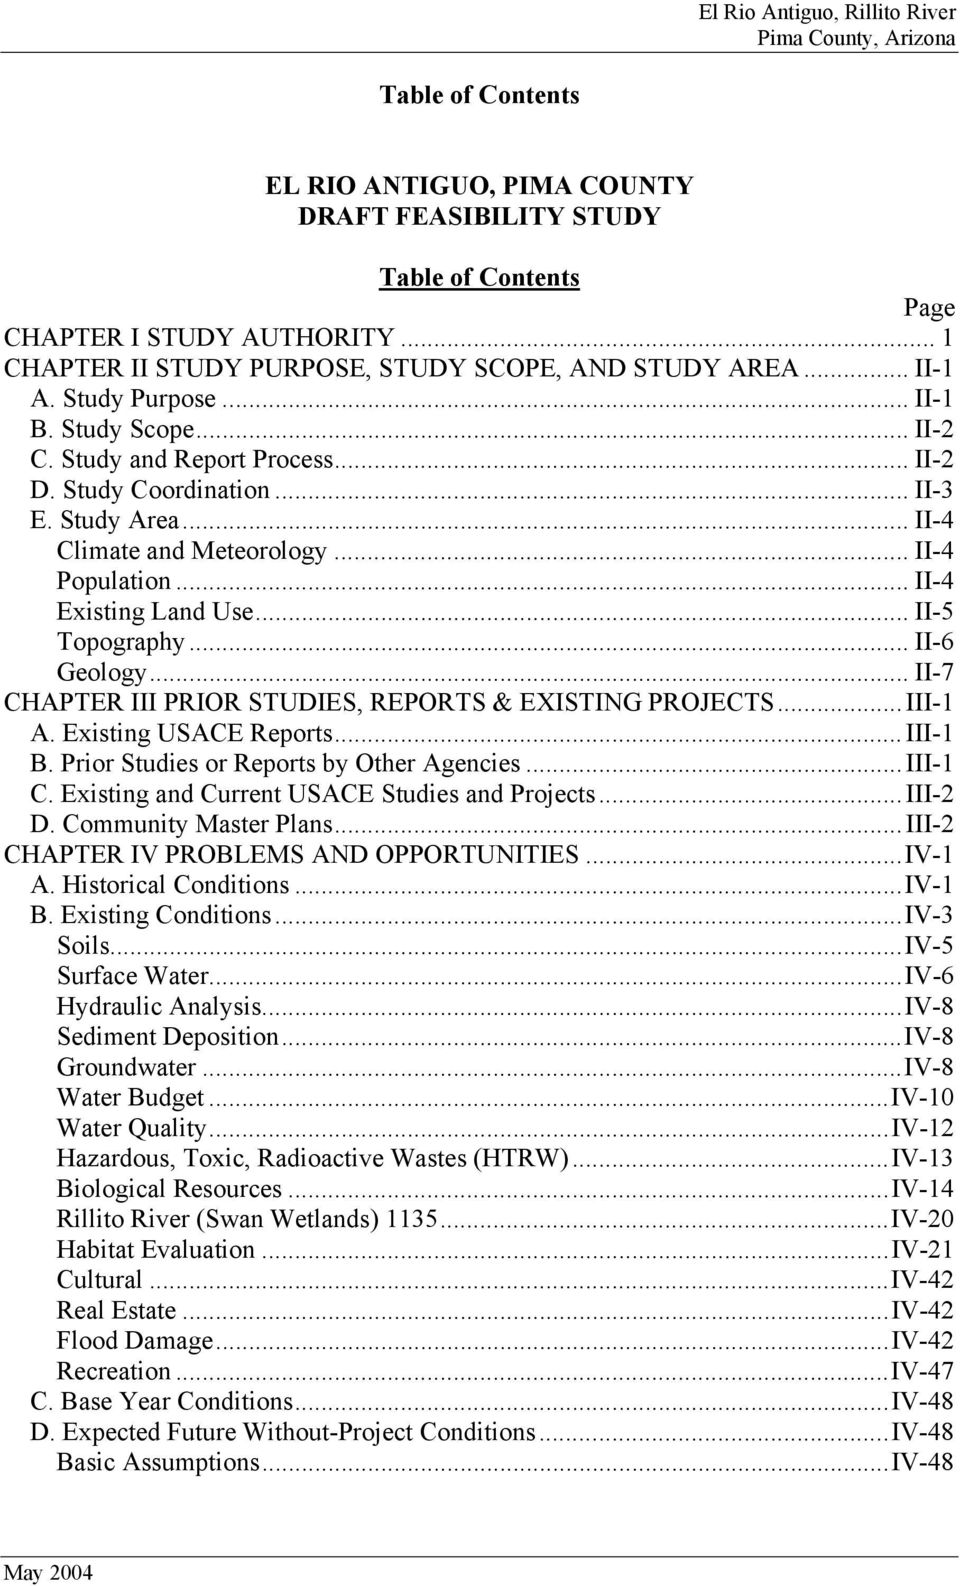 .. II-5 Topography... II-6 Geology... II-7 CHAPTER III PRIOR STUDIES, REPORTS & EXISTING PROJECTS...III-1 A. Existing USACE Reports...III-1 B. Prior Studies or Reports by Other Agencies...III-1 C.